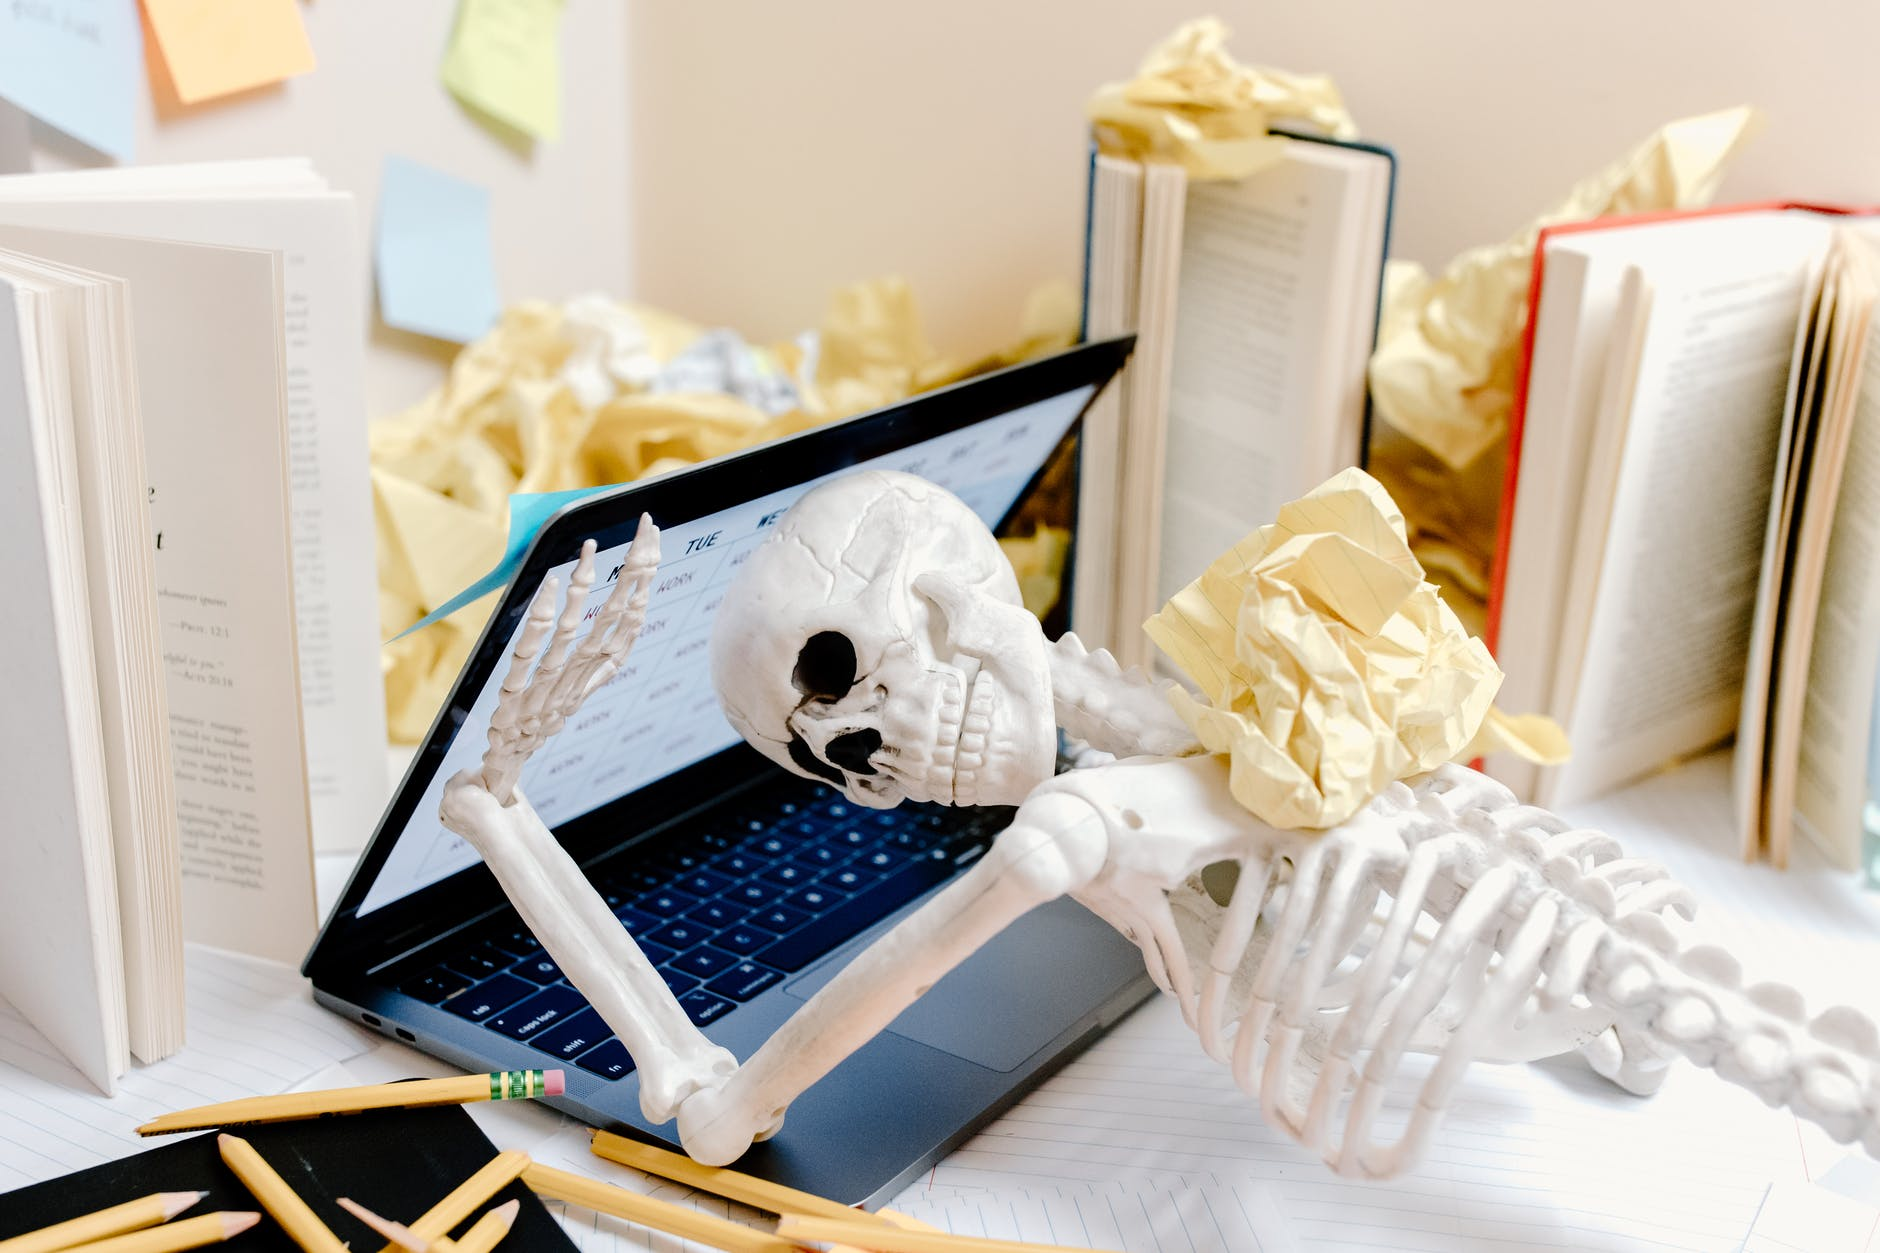 There's a Halloween skeleton covered in papers and being attacked by a laptop. The skeleton is trying to push the laptop open, but the laptop is closing over the skeleton's head. The skeleton is looking towards us, making it seem like there's a look of desperation in its face.